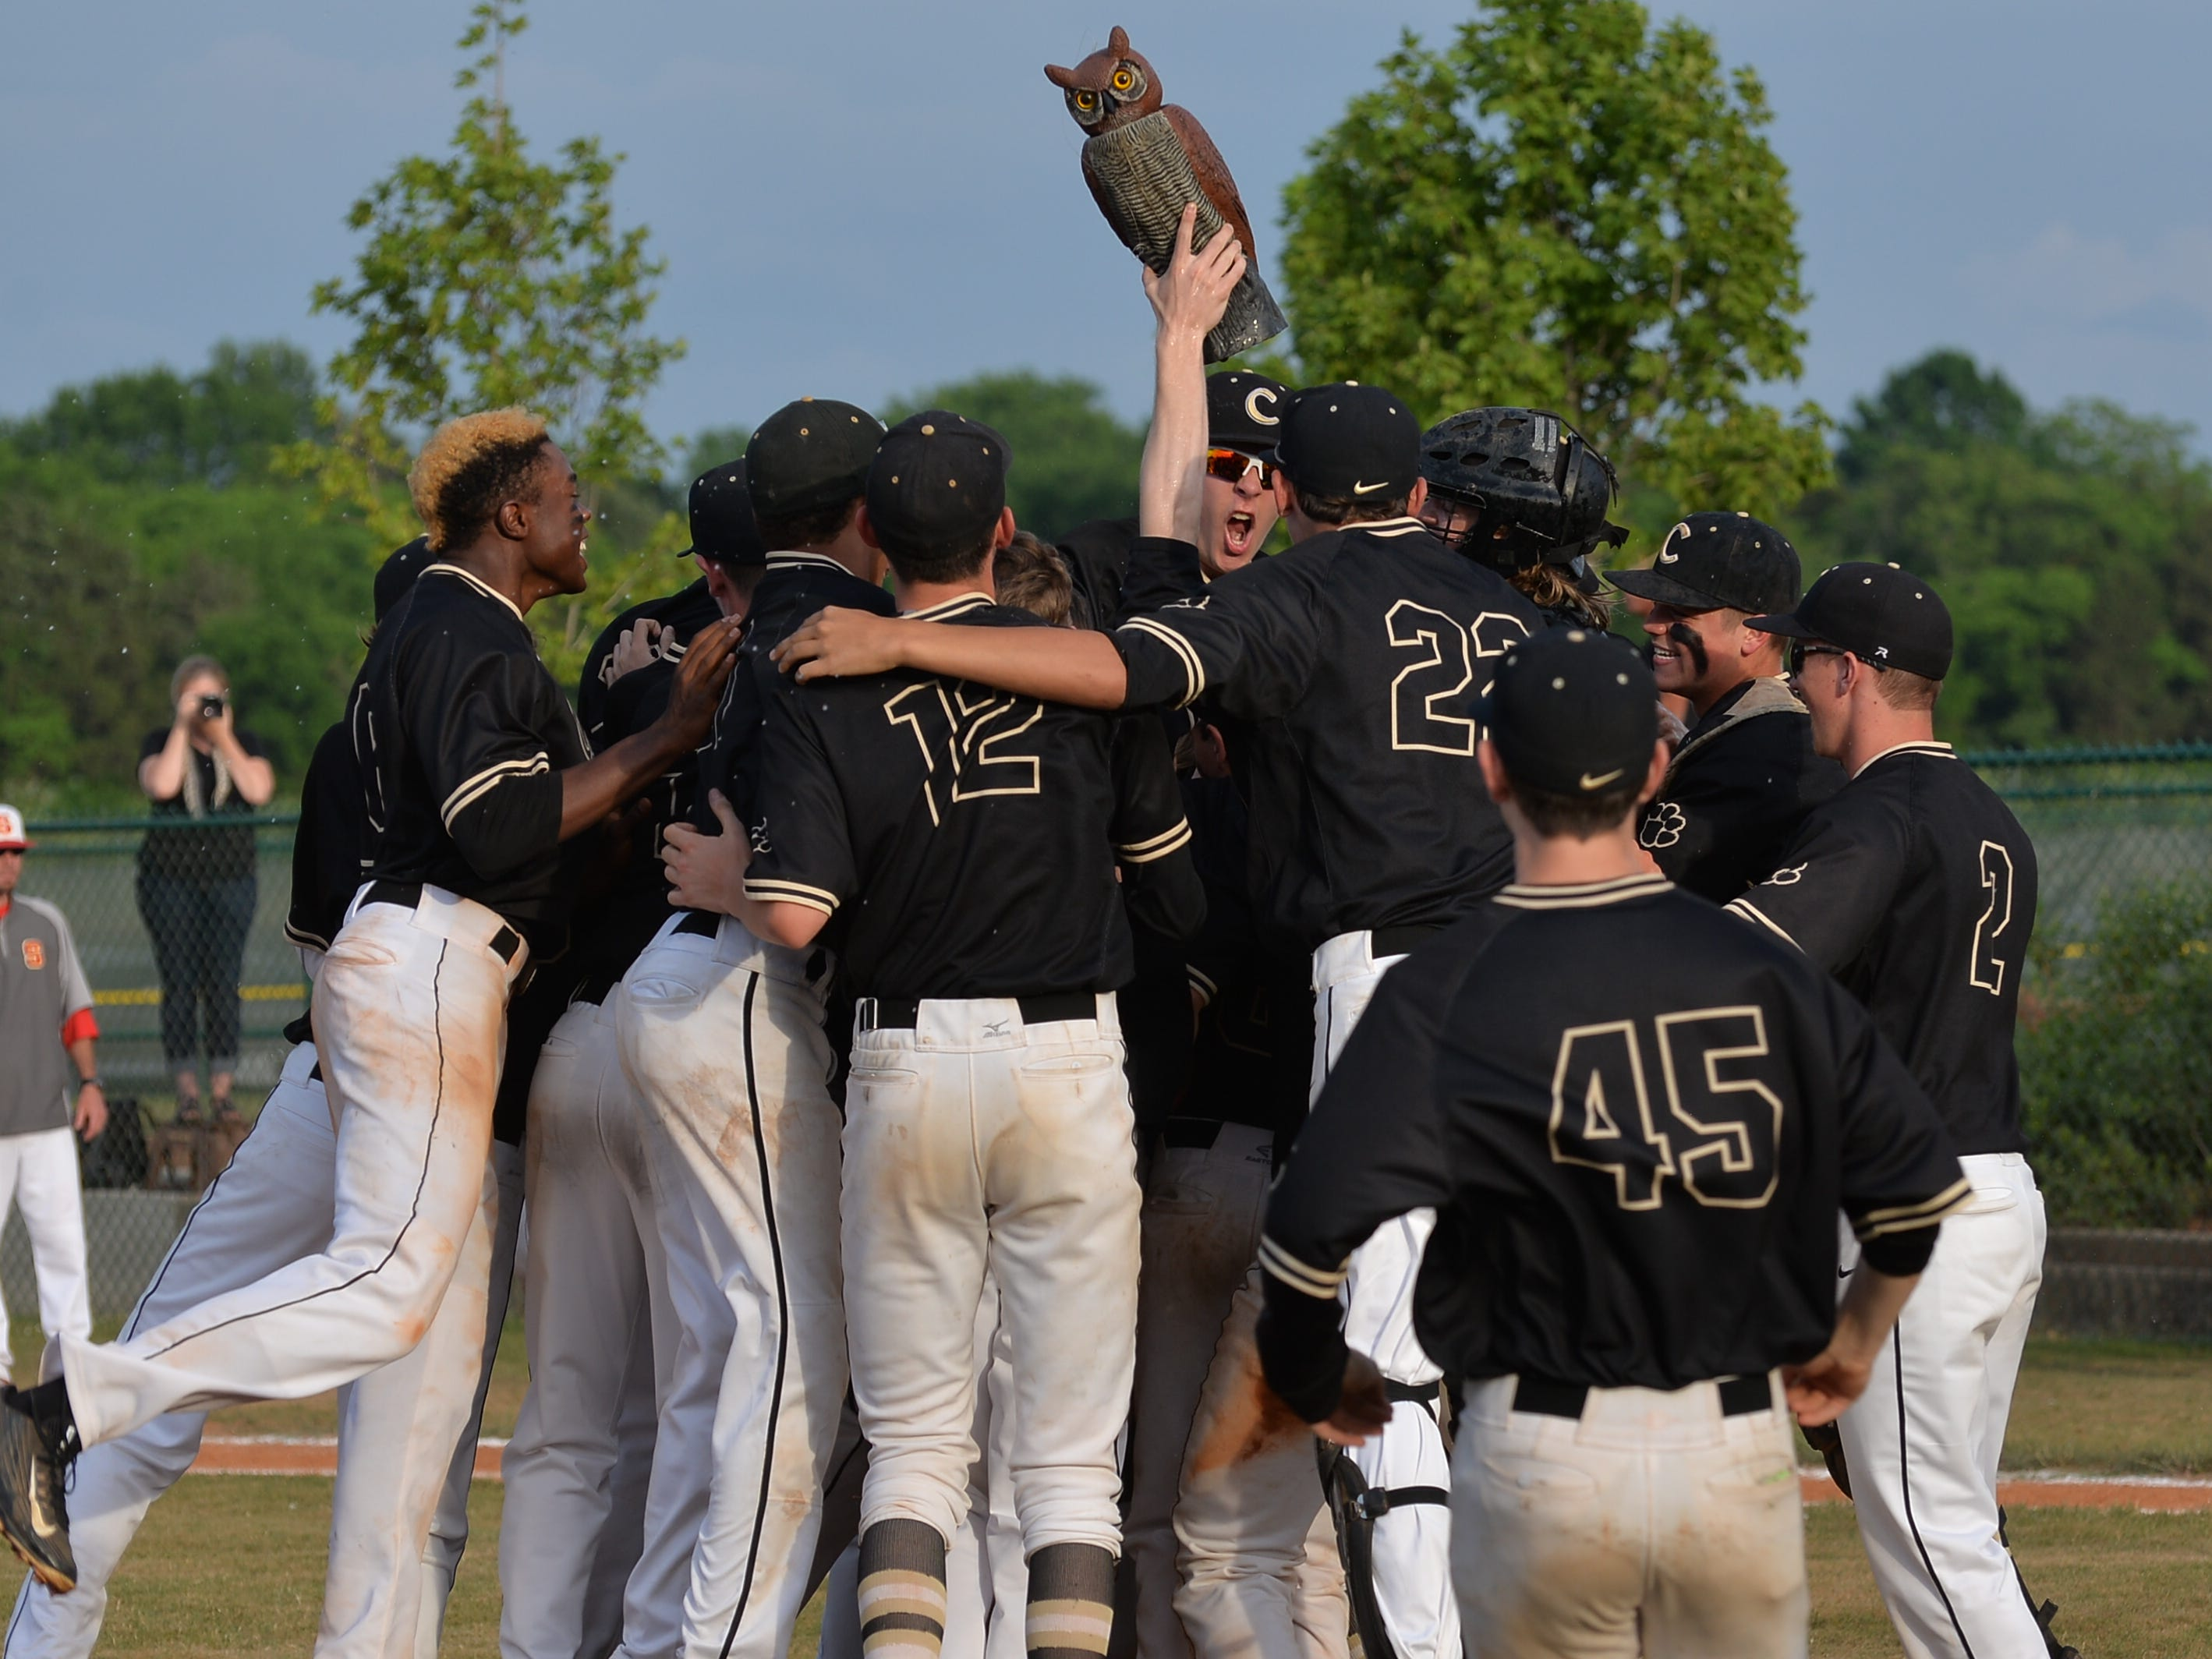 Central Magnet's baseball team celebrates its 4-0 win in Friday's Class AA sectional to qualify for their third straight state tournament.